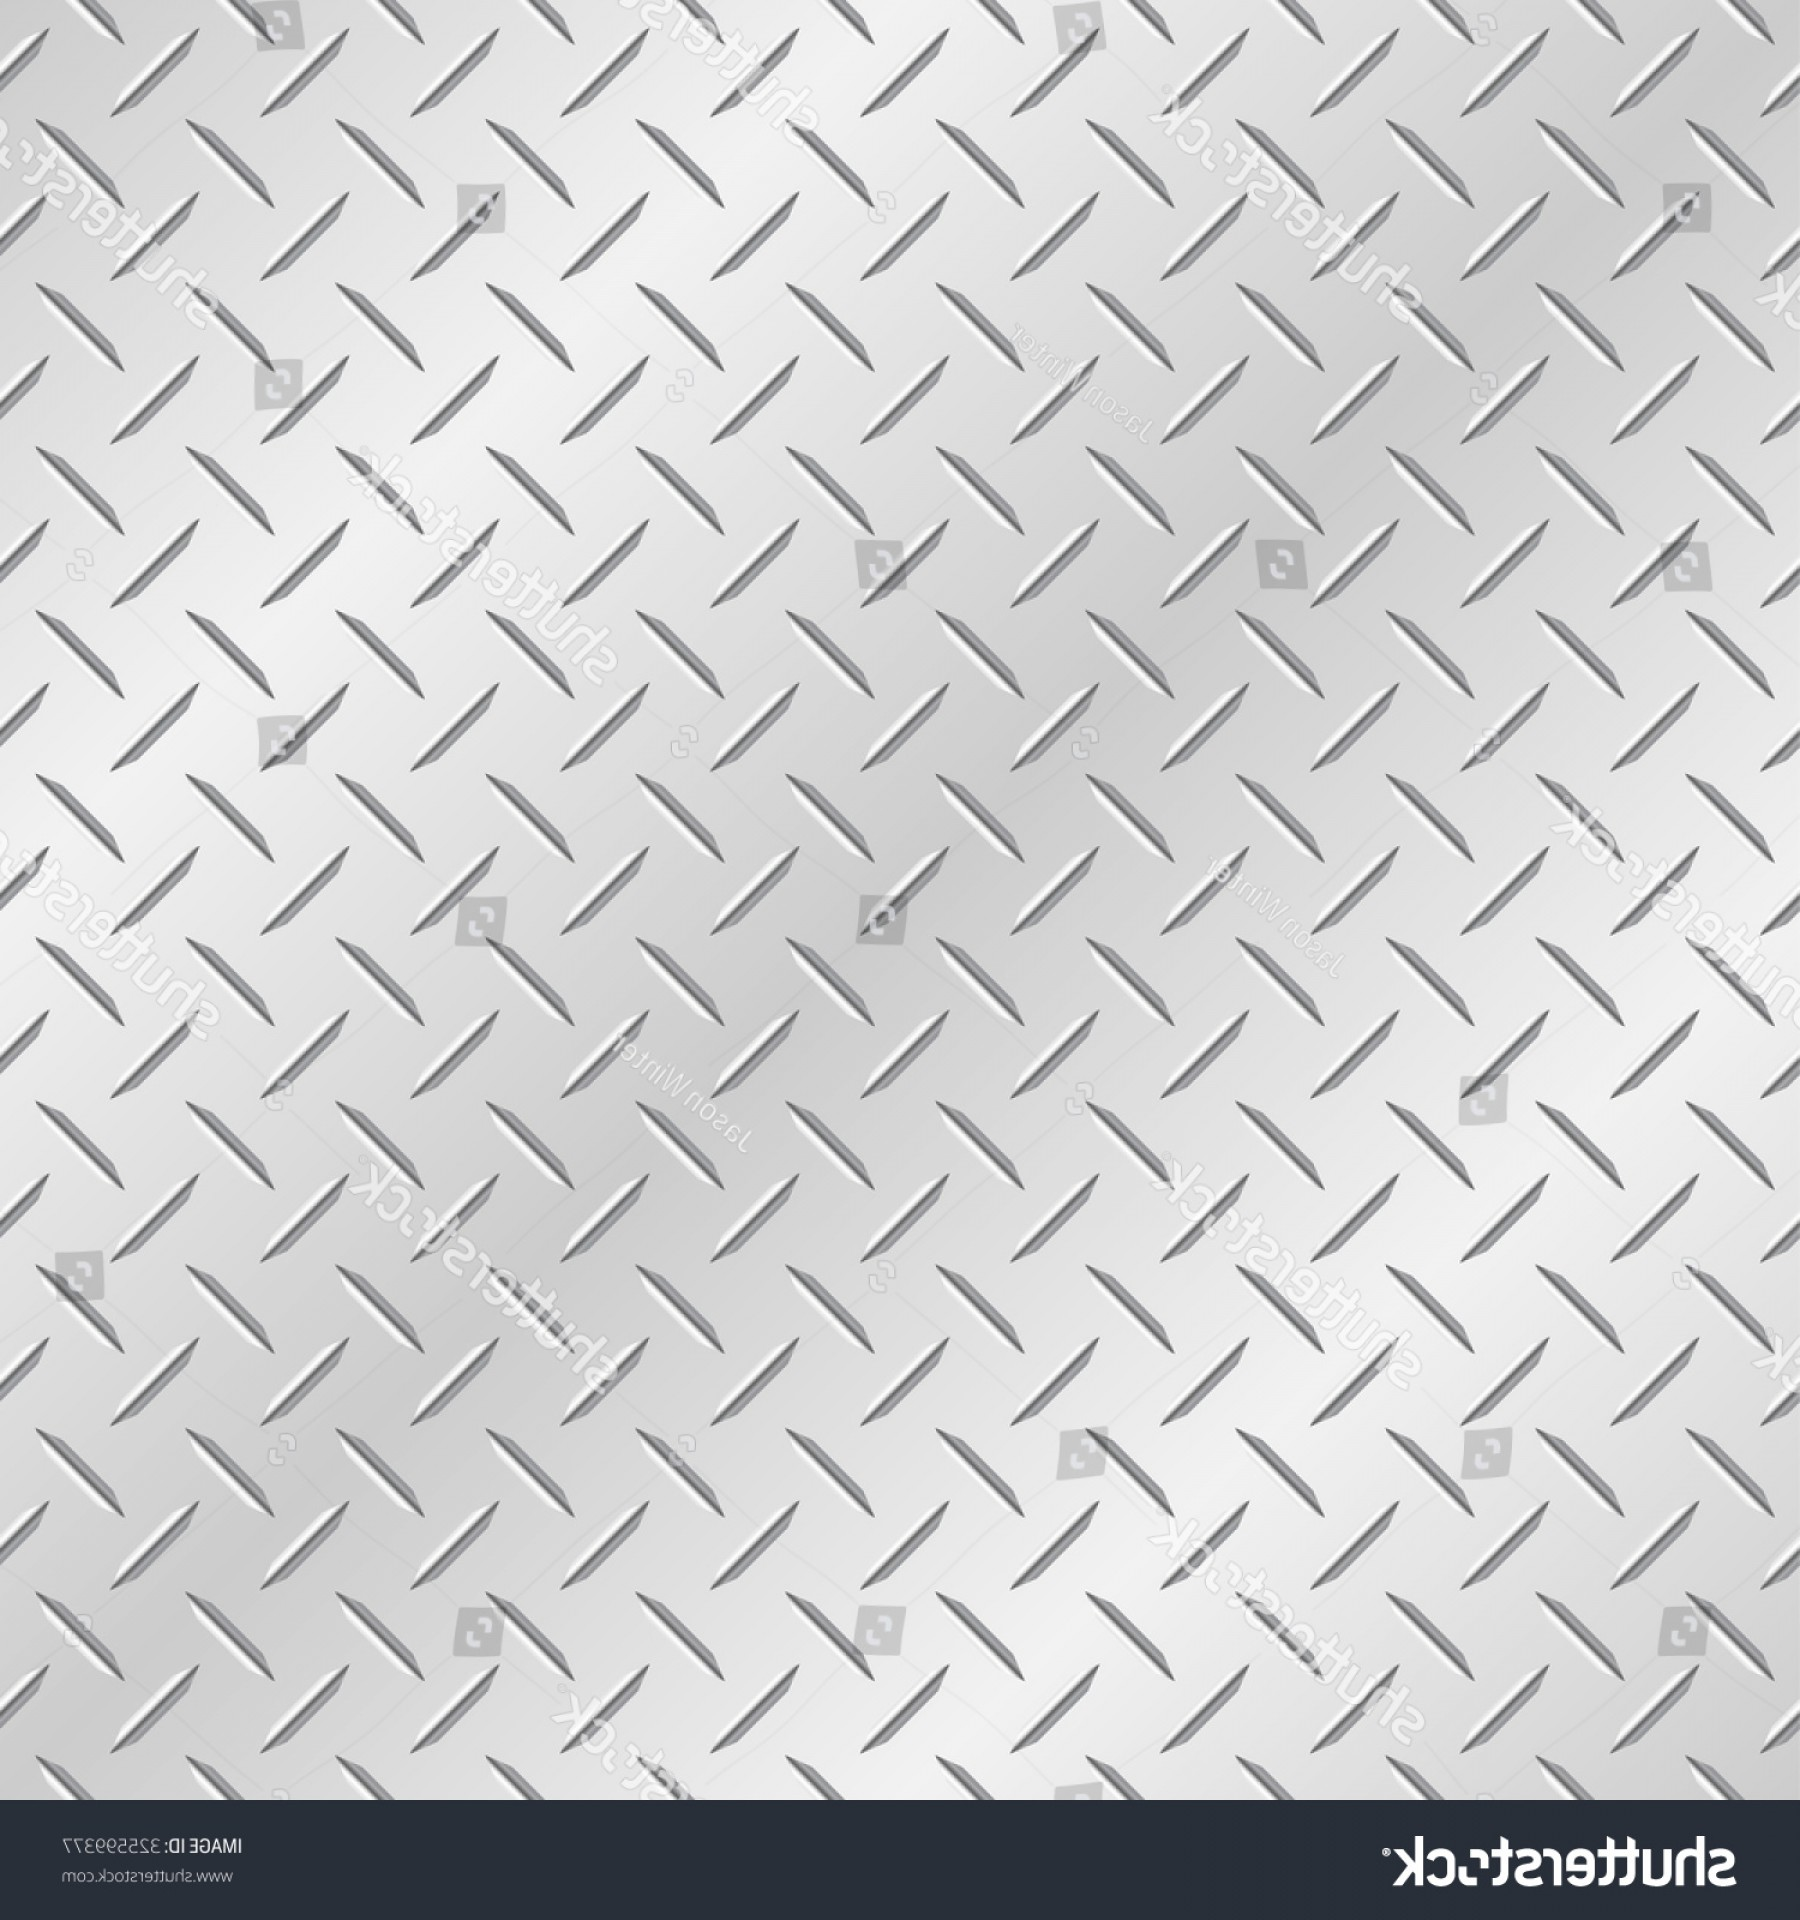 Diamond Plate Vector Pattern: Metal Diamond Plate Vector Wallpaper Background